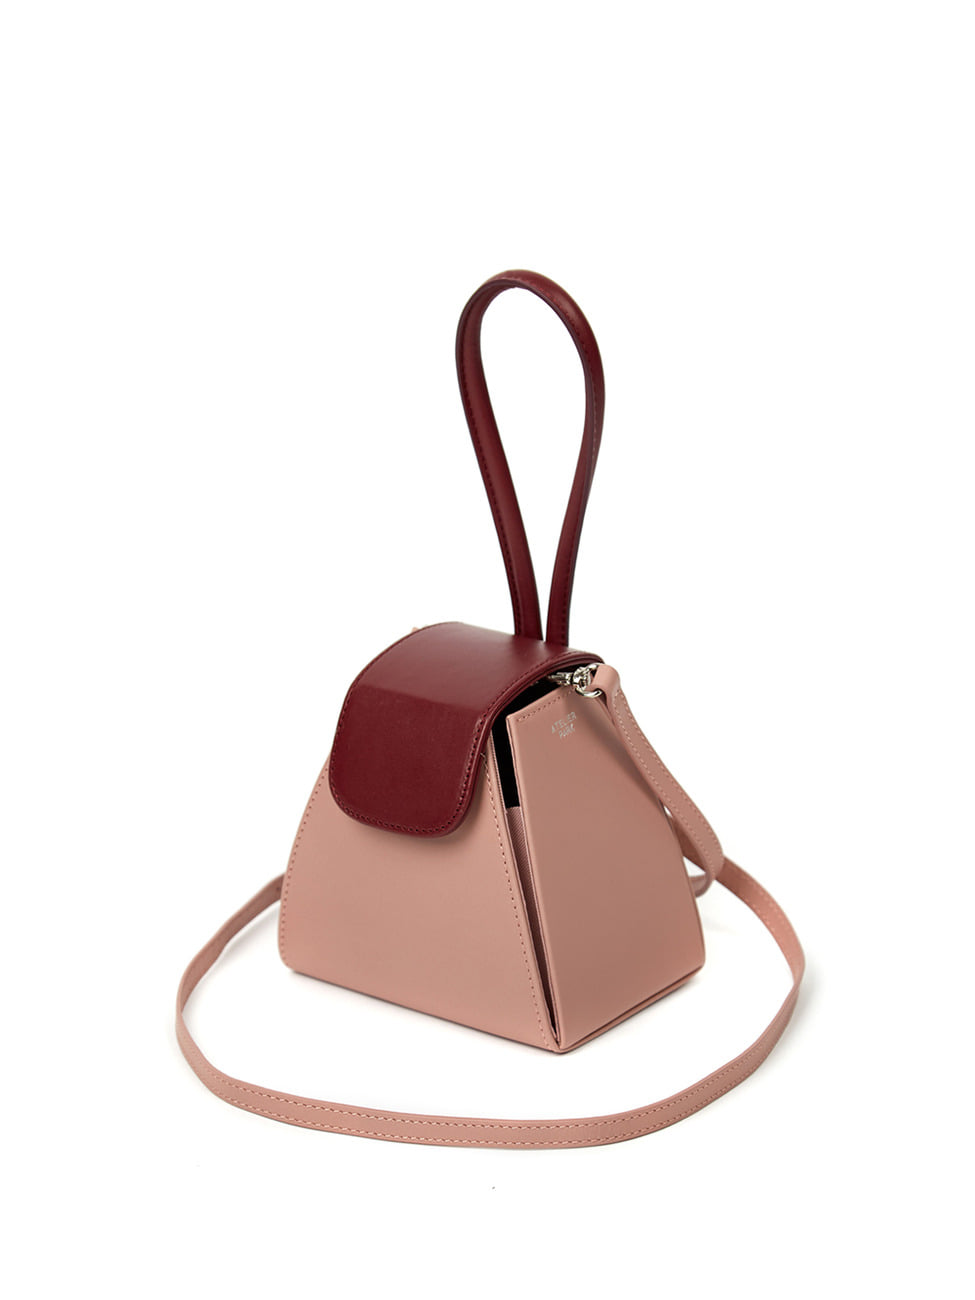 COLOR BLOCK HANDLE BAG -PINK/BURGUNDY(레더스트랩 포함)